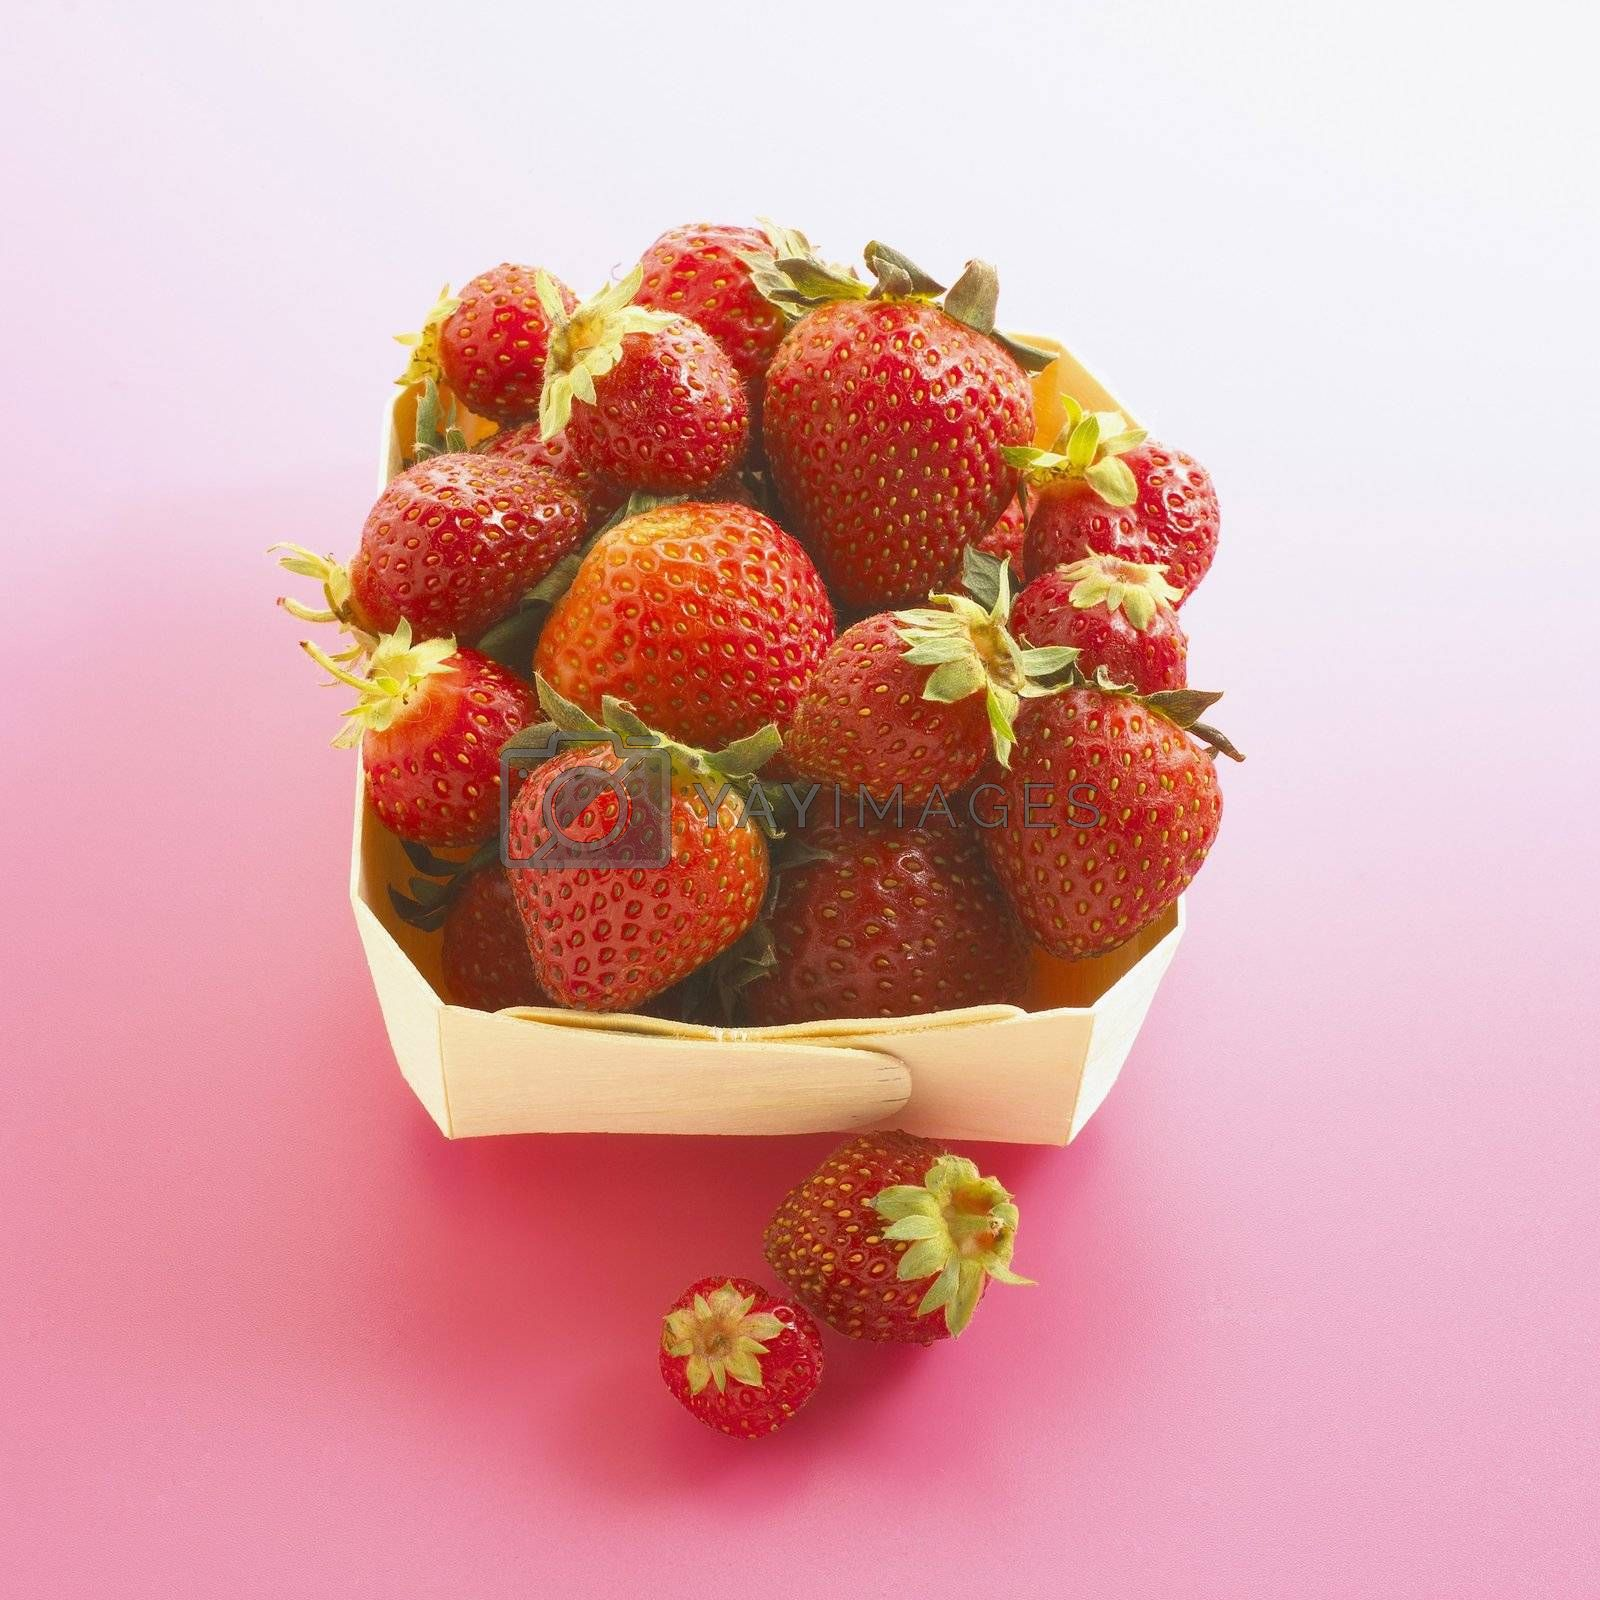 Organic Strawberries in Carton